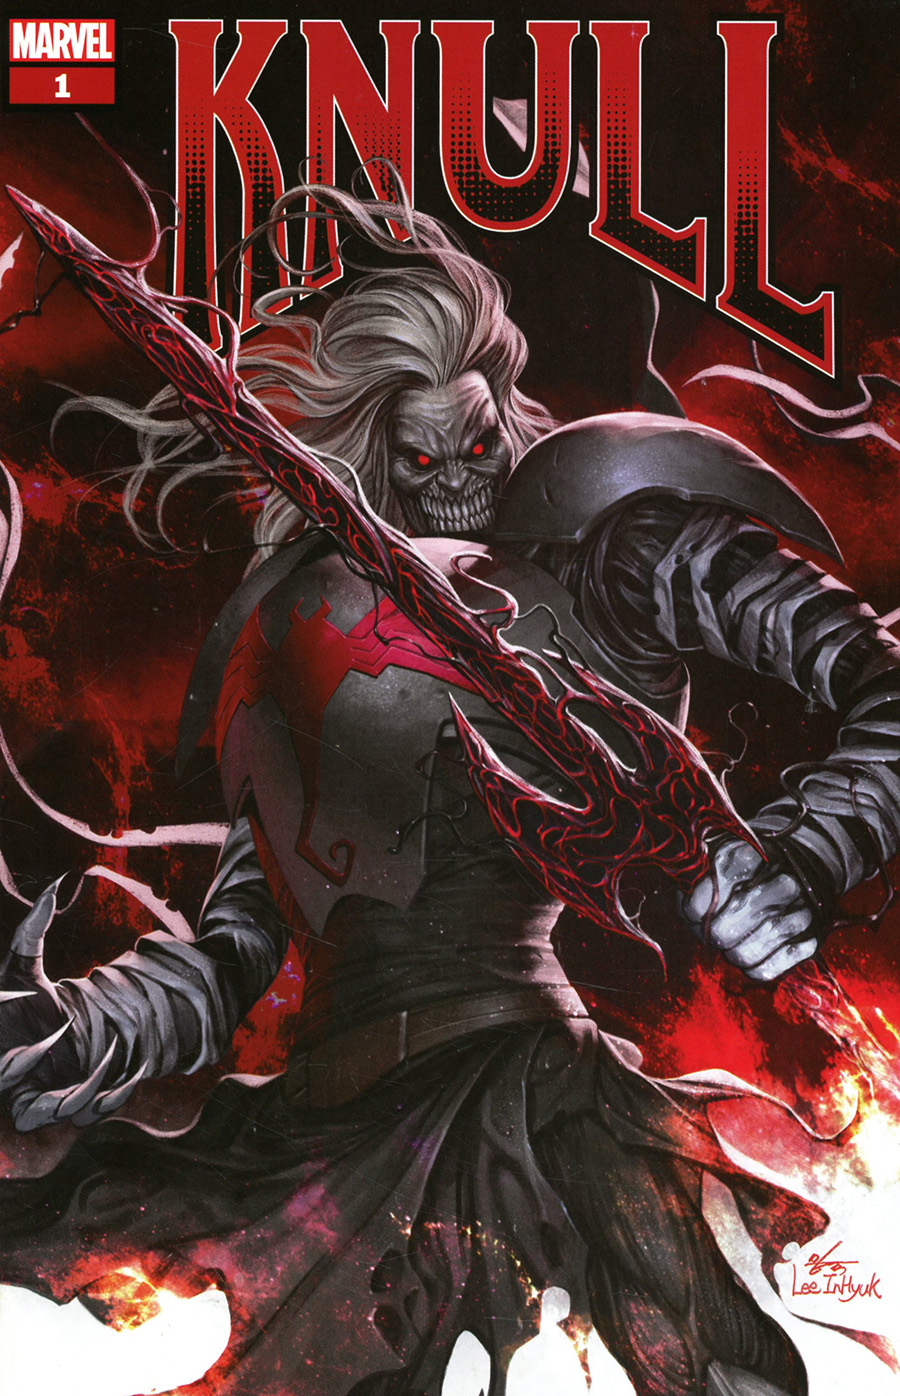 Knull Marvel Tales #1 Cover A Regular Inhyuk Lee Cover (King In Black Tie-In)